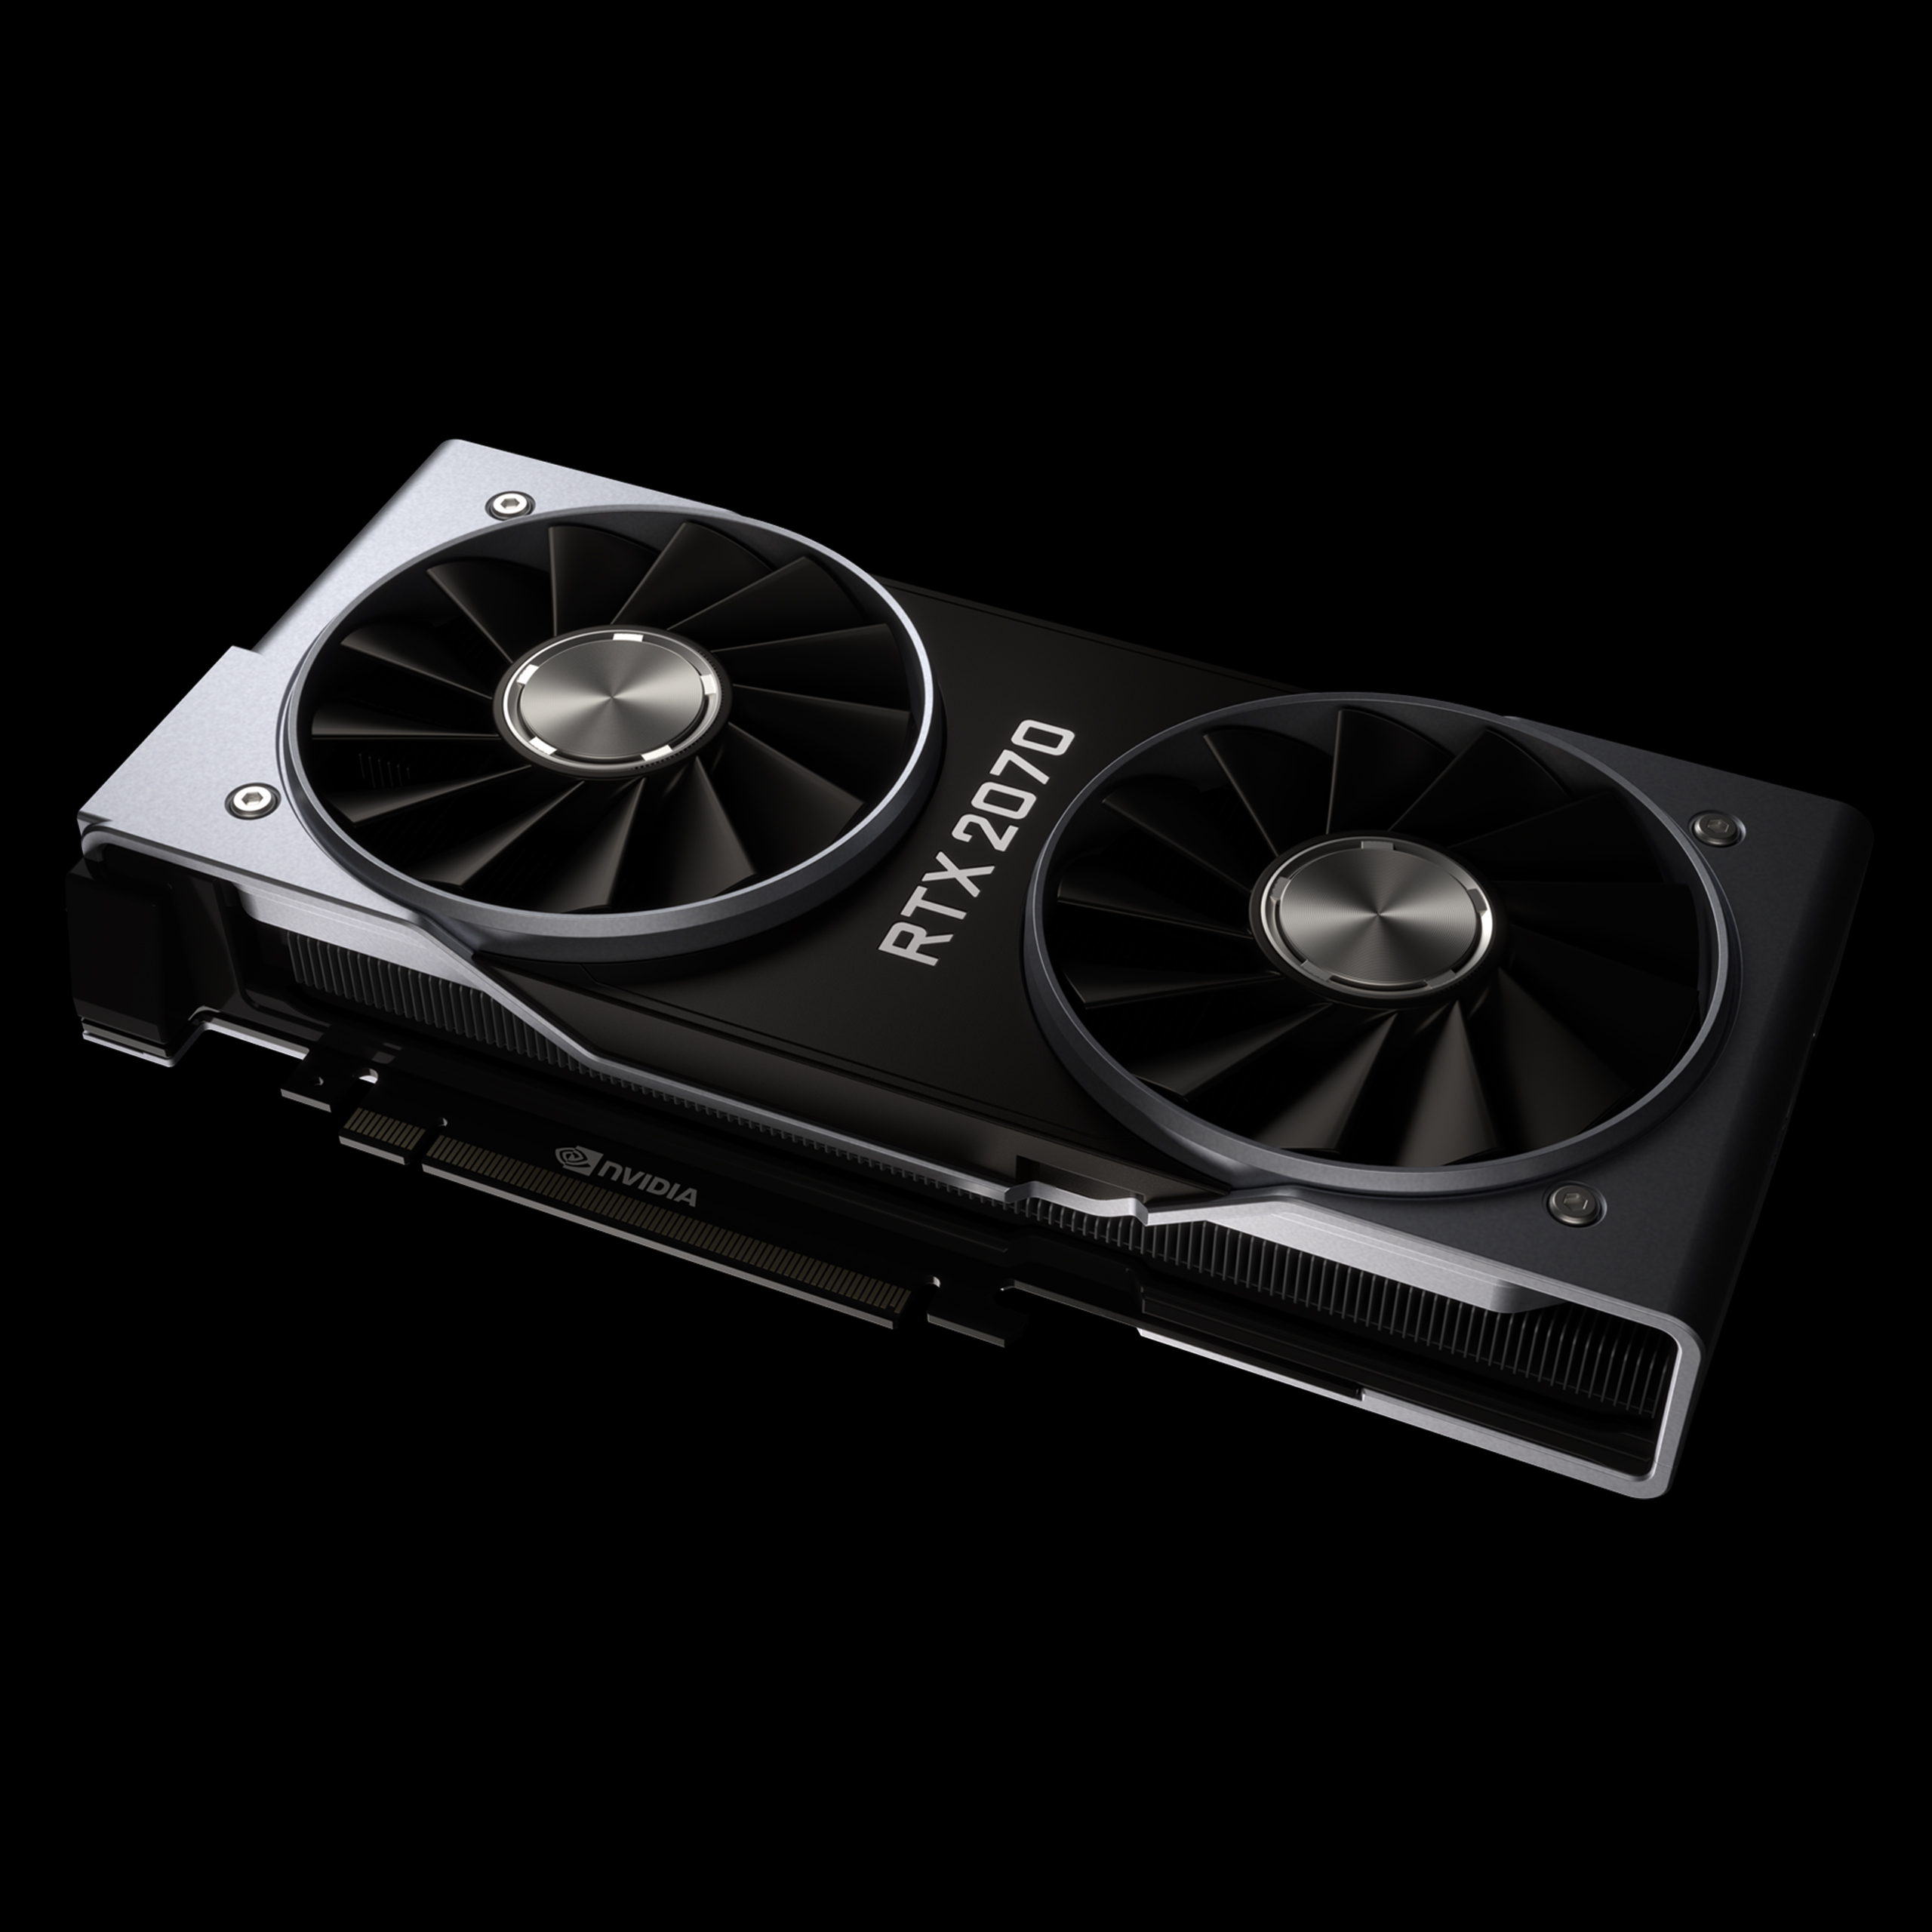 Photo of Detalii de performanță pentru GeForce RTX 2070